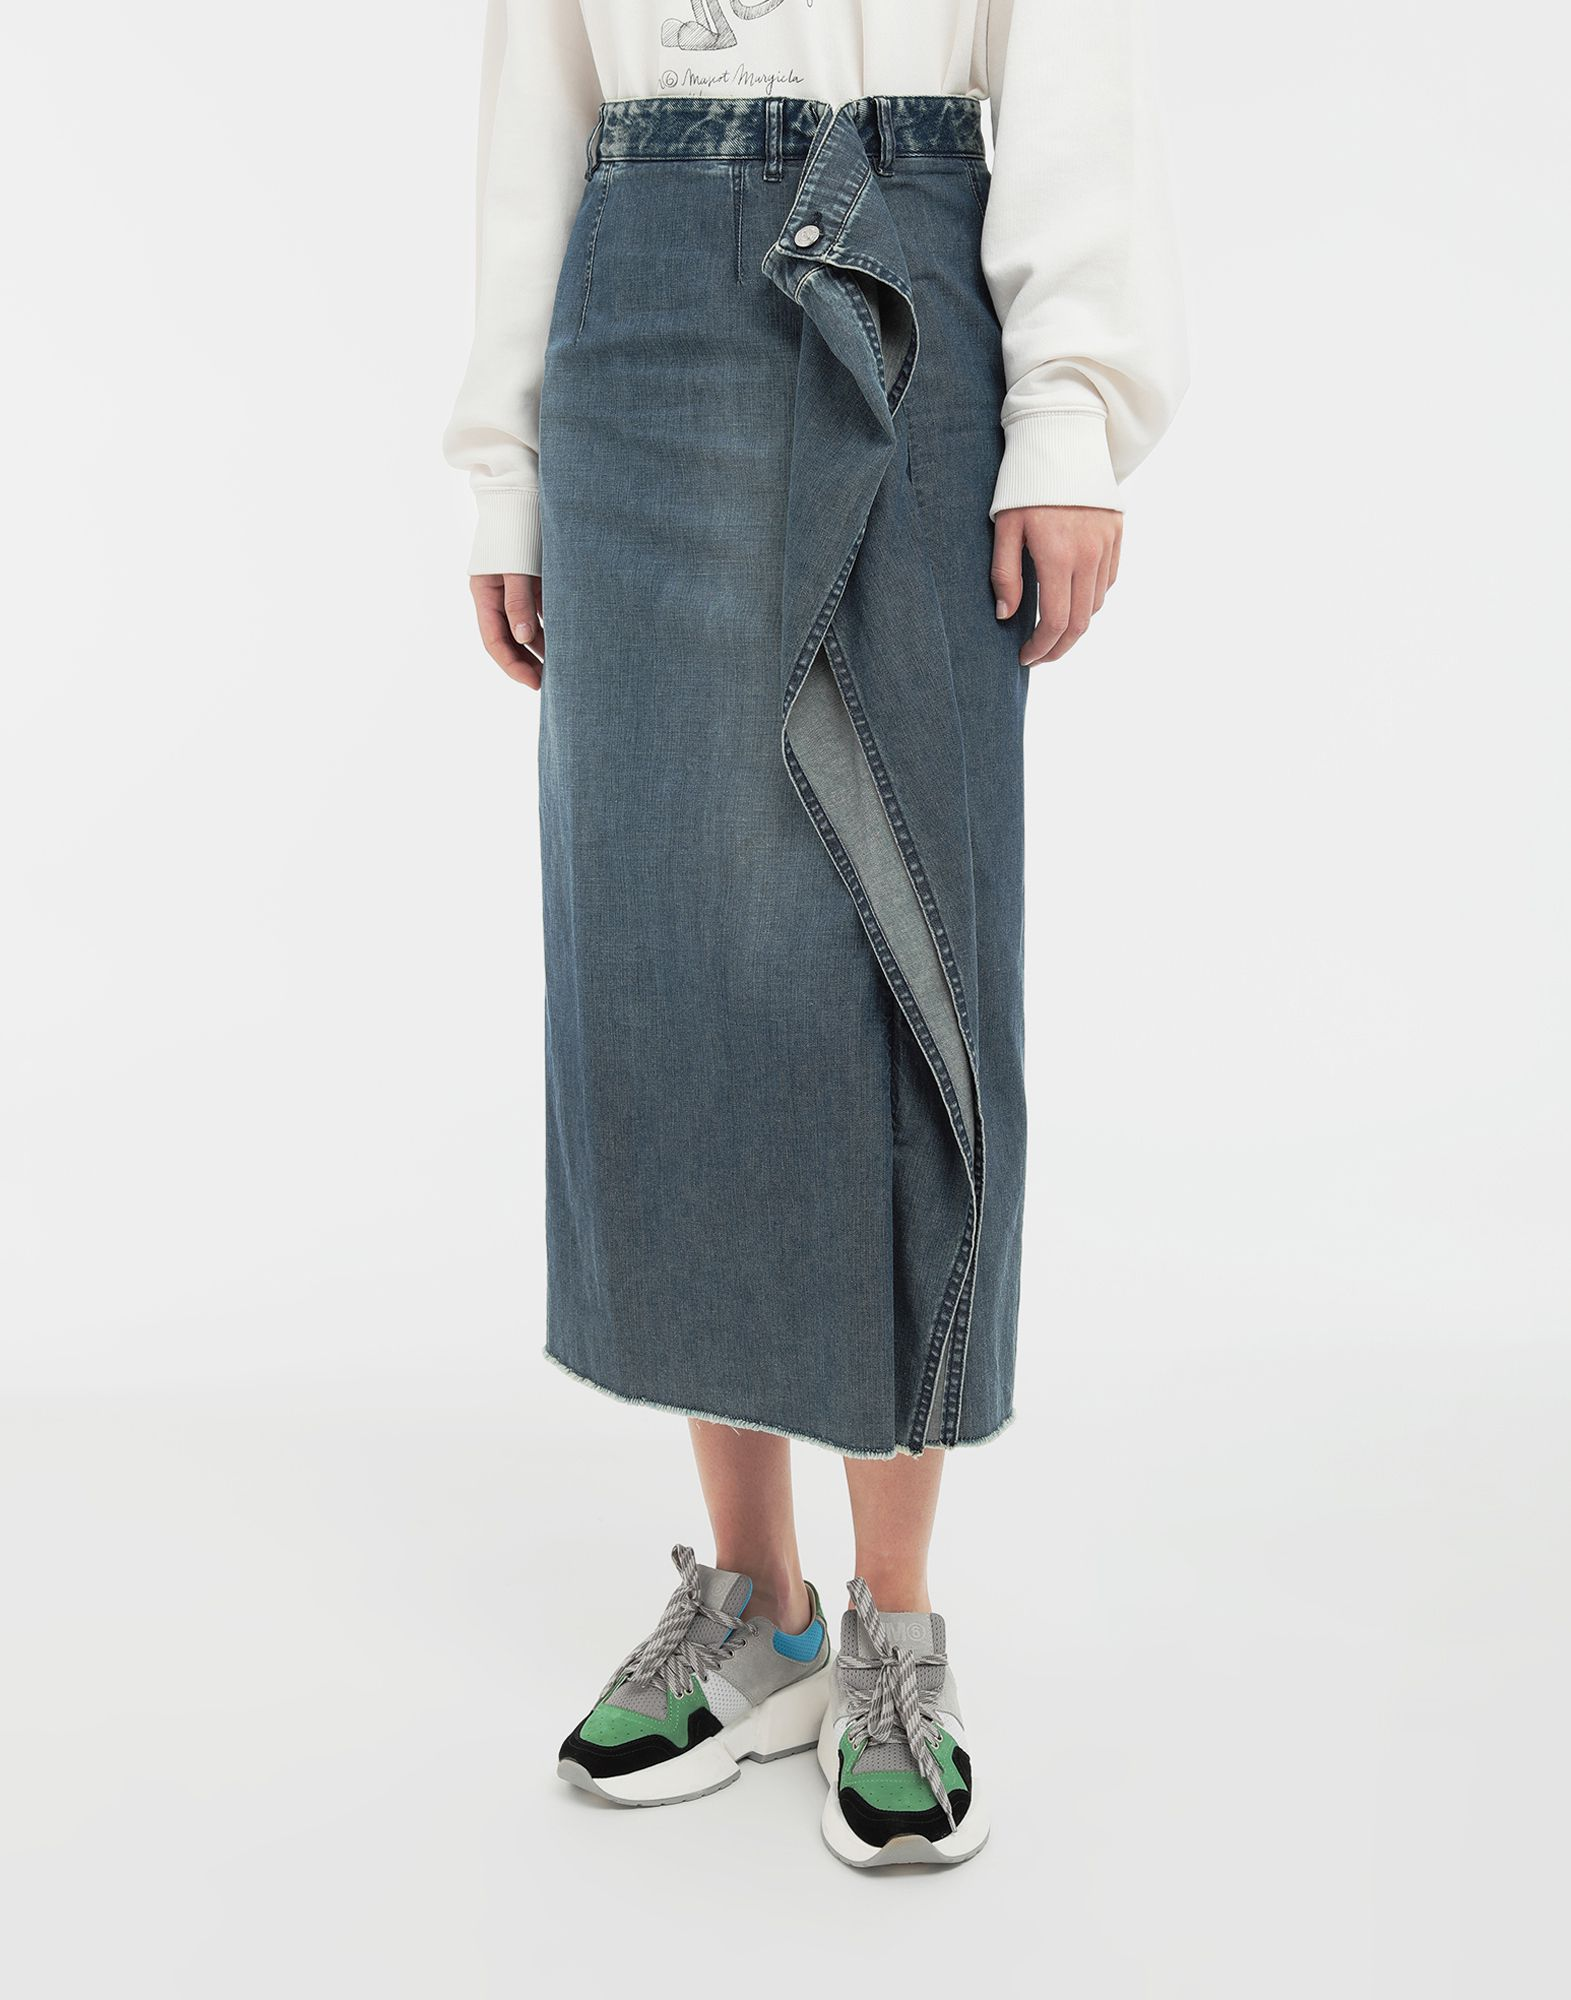 MM6 MAISON MARGIELA Wrap denim skirt Denim skirt Woman r